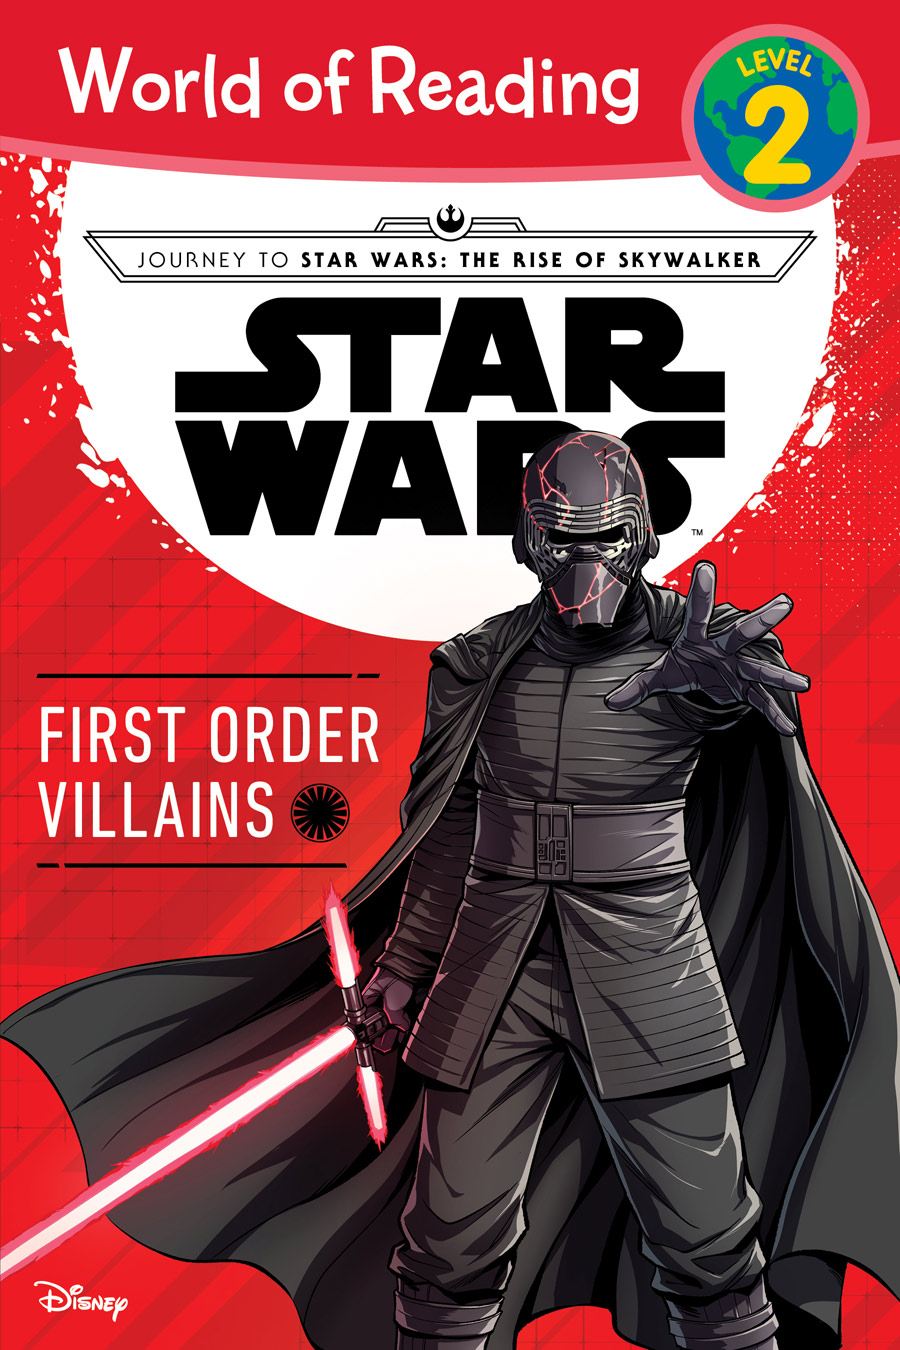 First Order Villains (World of Reading Level 2) (04.10.2019)